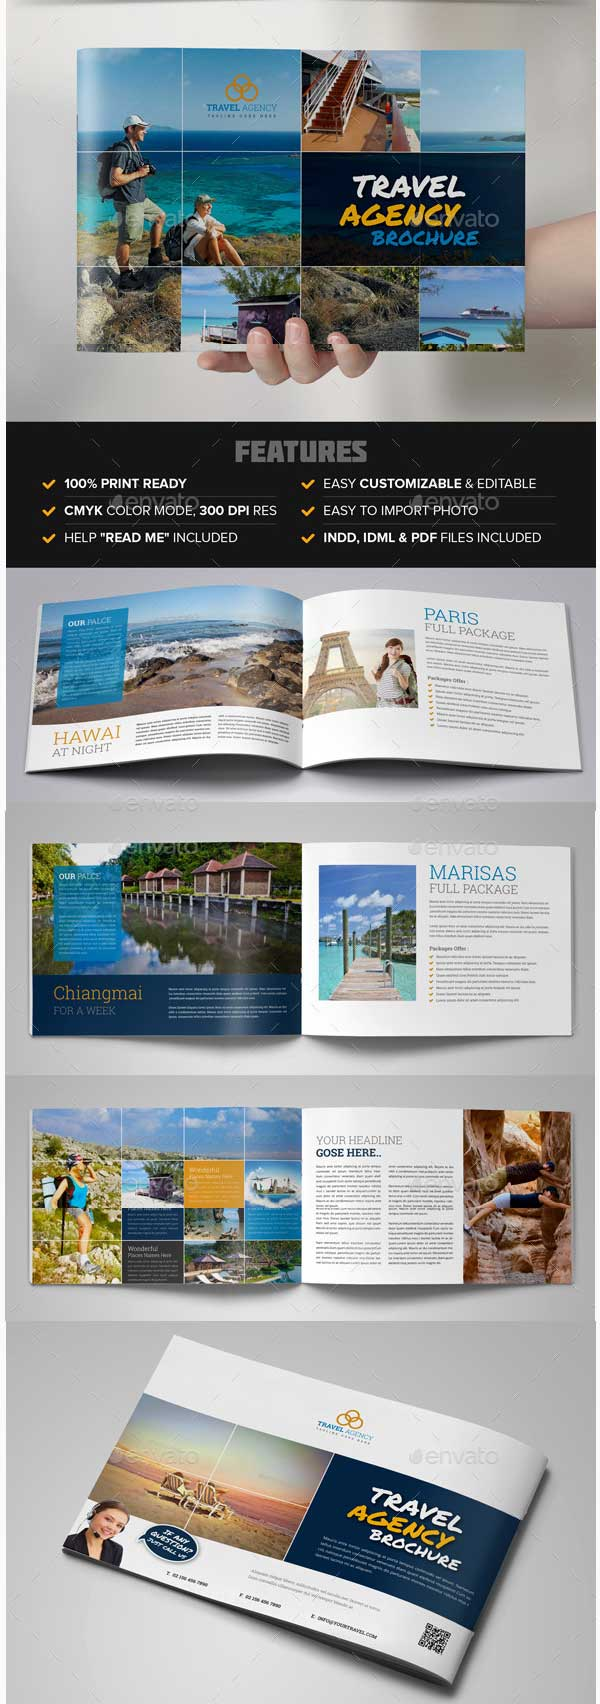 travel-agency-brochure-catalog-indesign-template